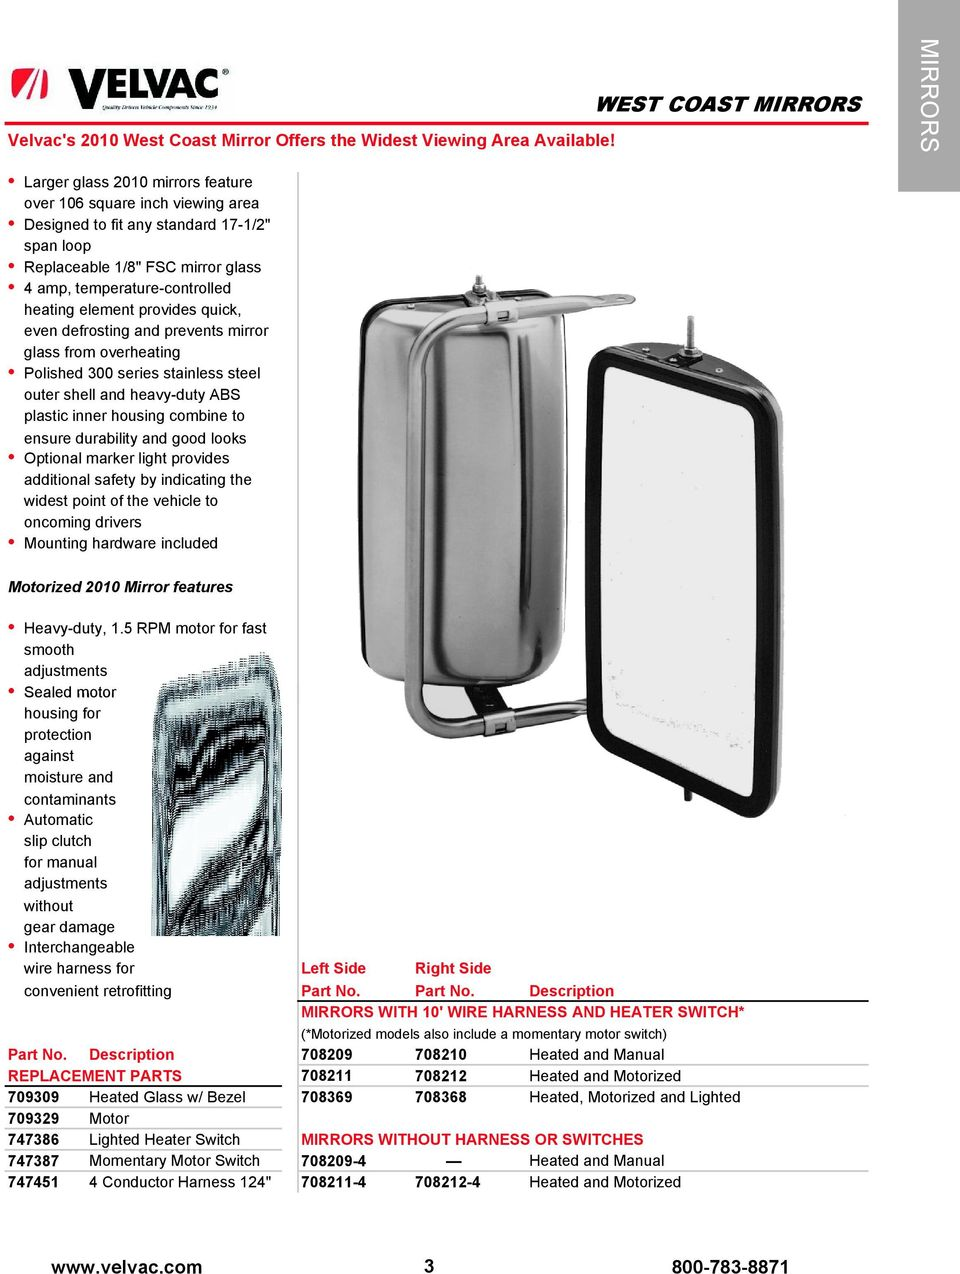 the passing lane since 1934 product catalog product catalog temperature controlled heating element provides quick even defrosting and prevents mirror glass from overheating